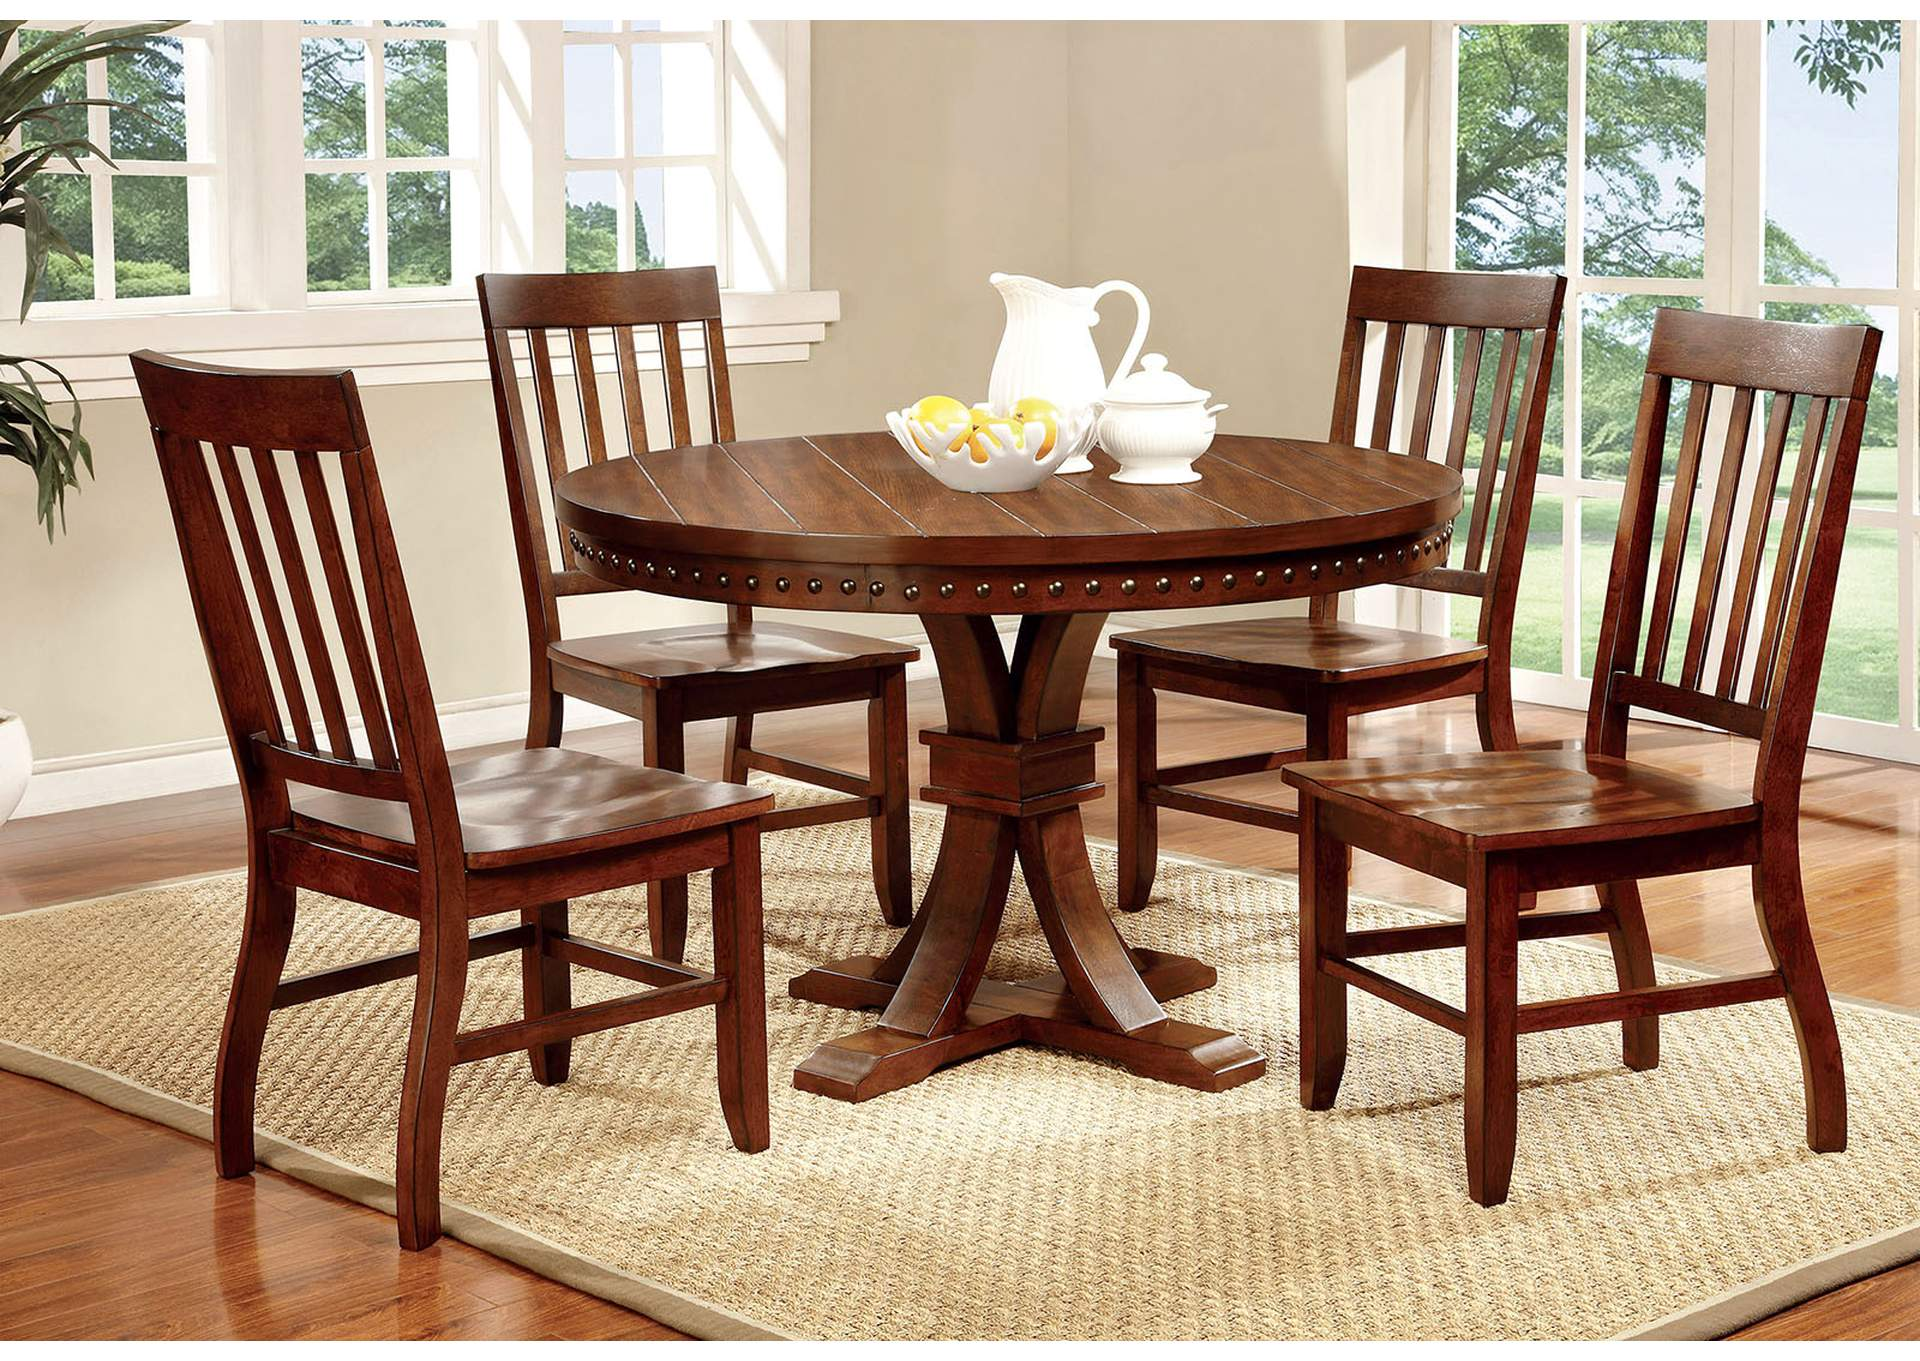 Foster L Dark Oak Round Dining TableFurniture Of America